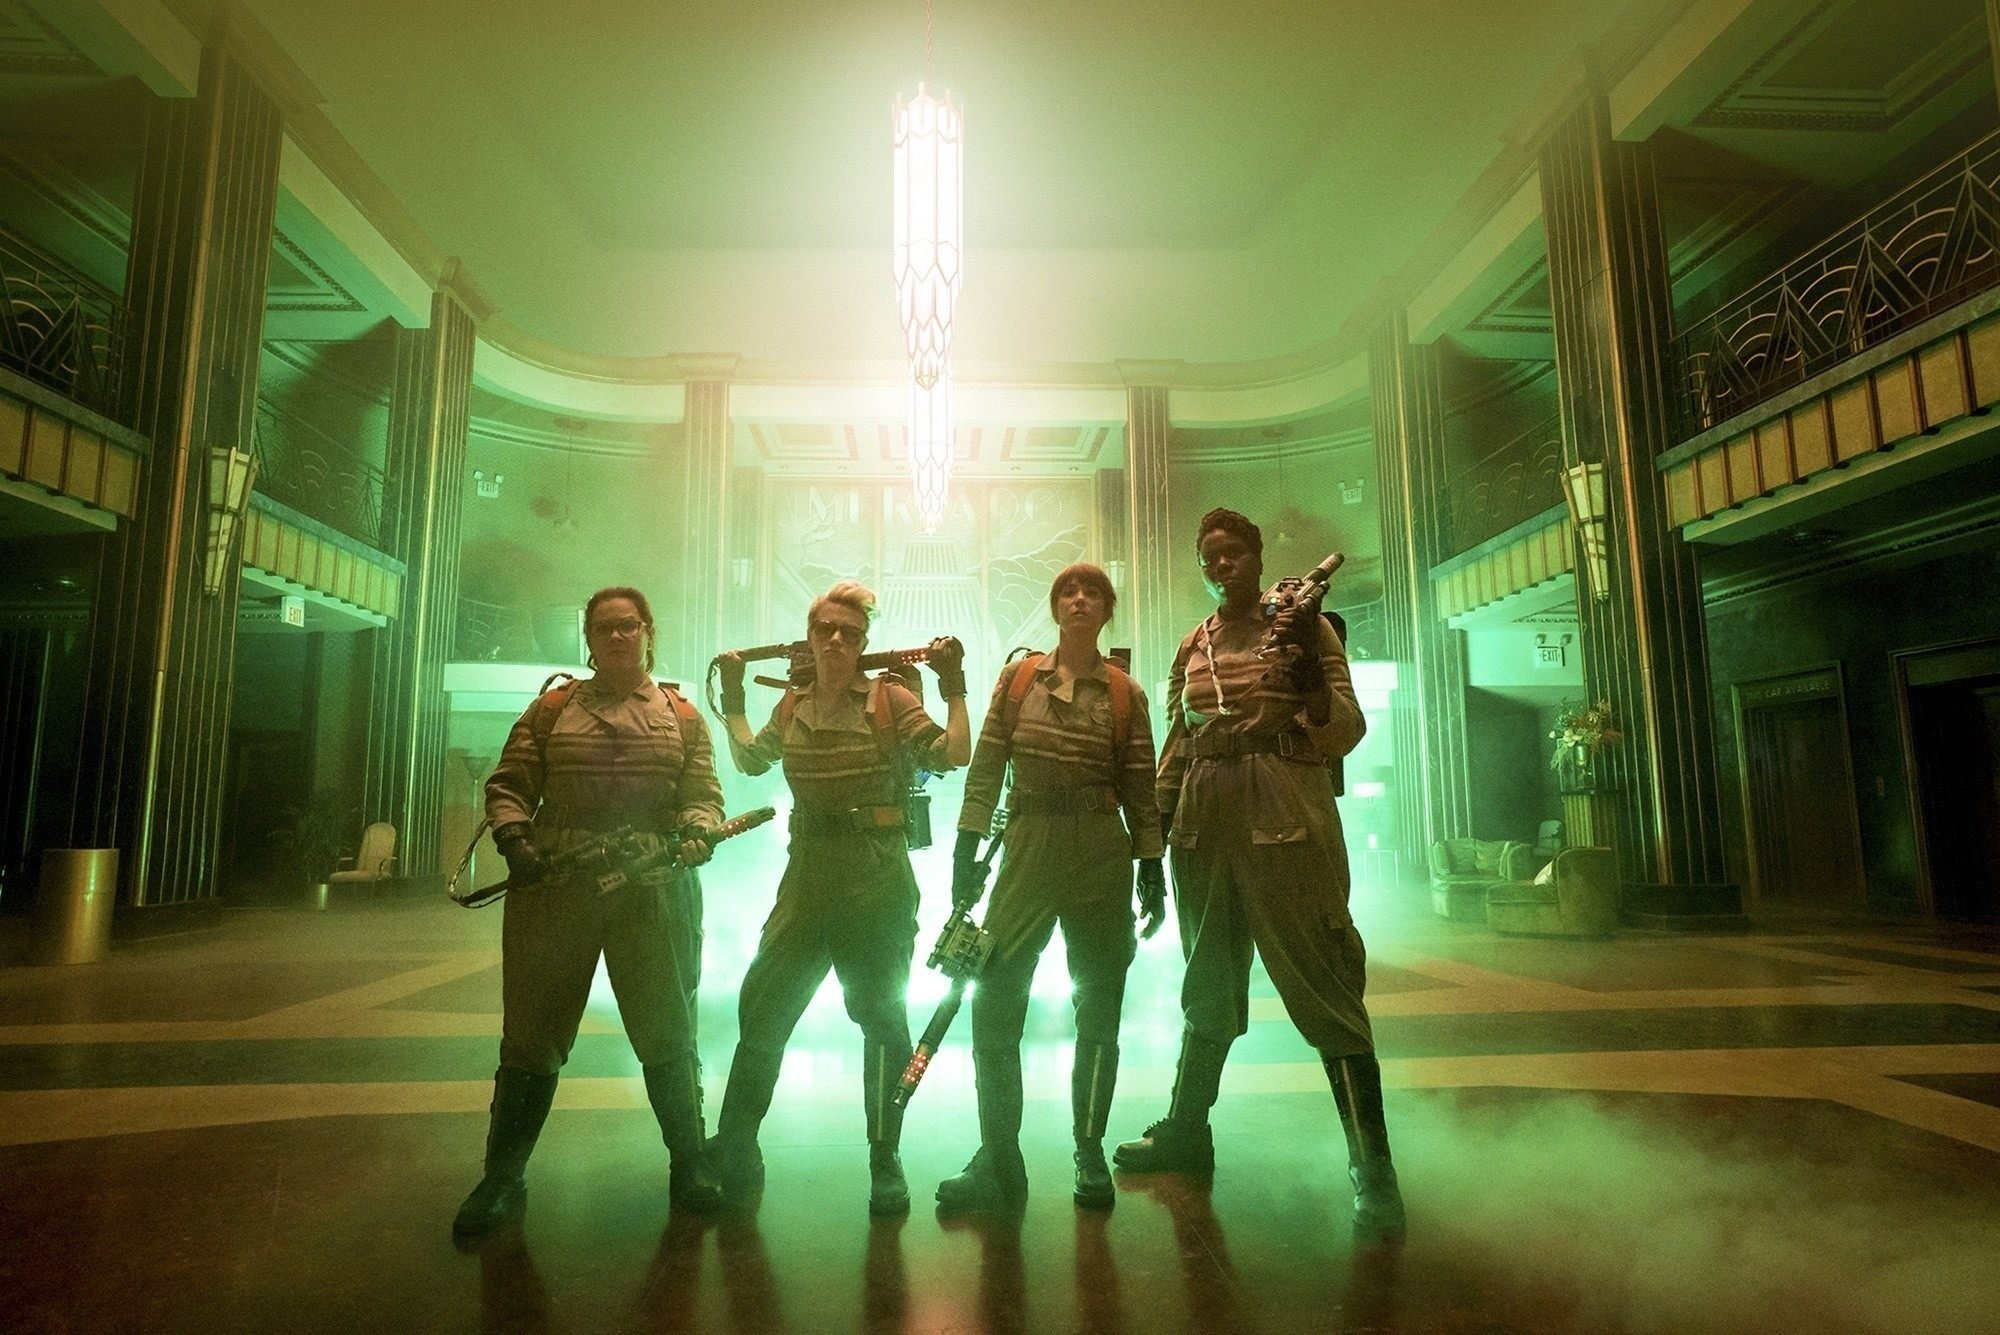 Sony: No decision made yet on 'Ghostbusters' in China